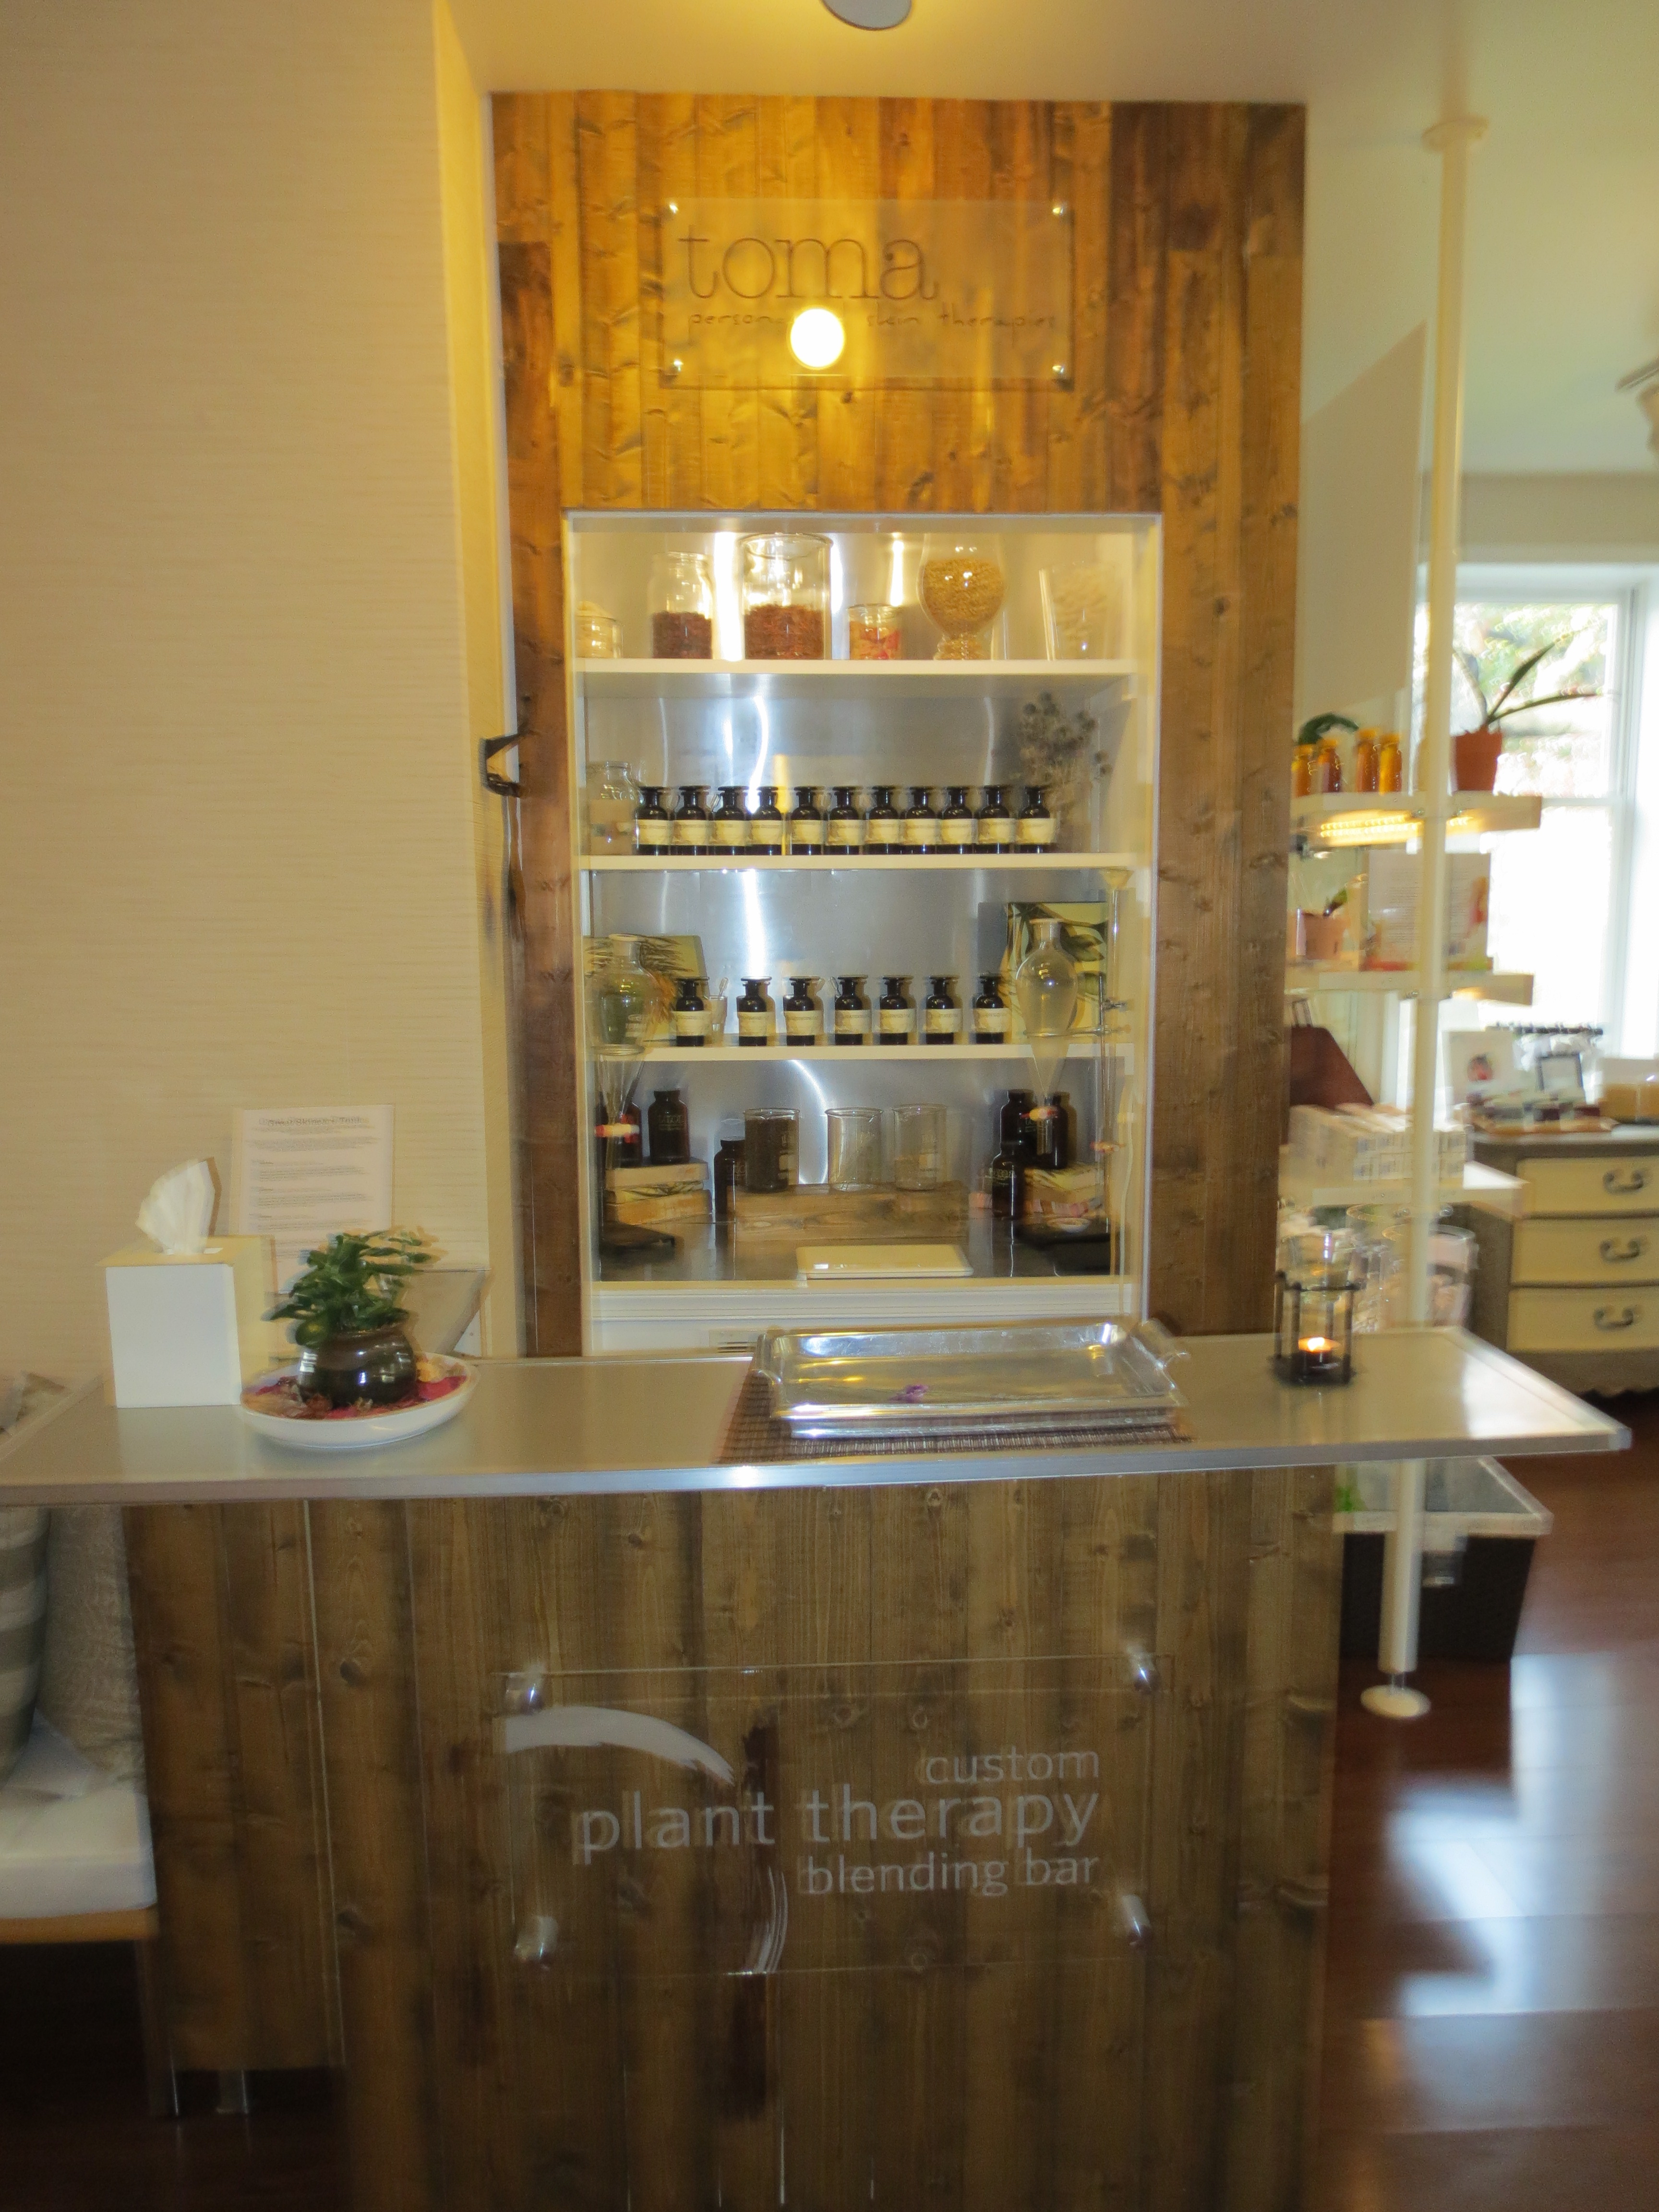 The custom blending bar for bespoke skin care (Photo: Lia Phipps/DC on Heels)